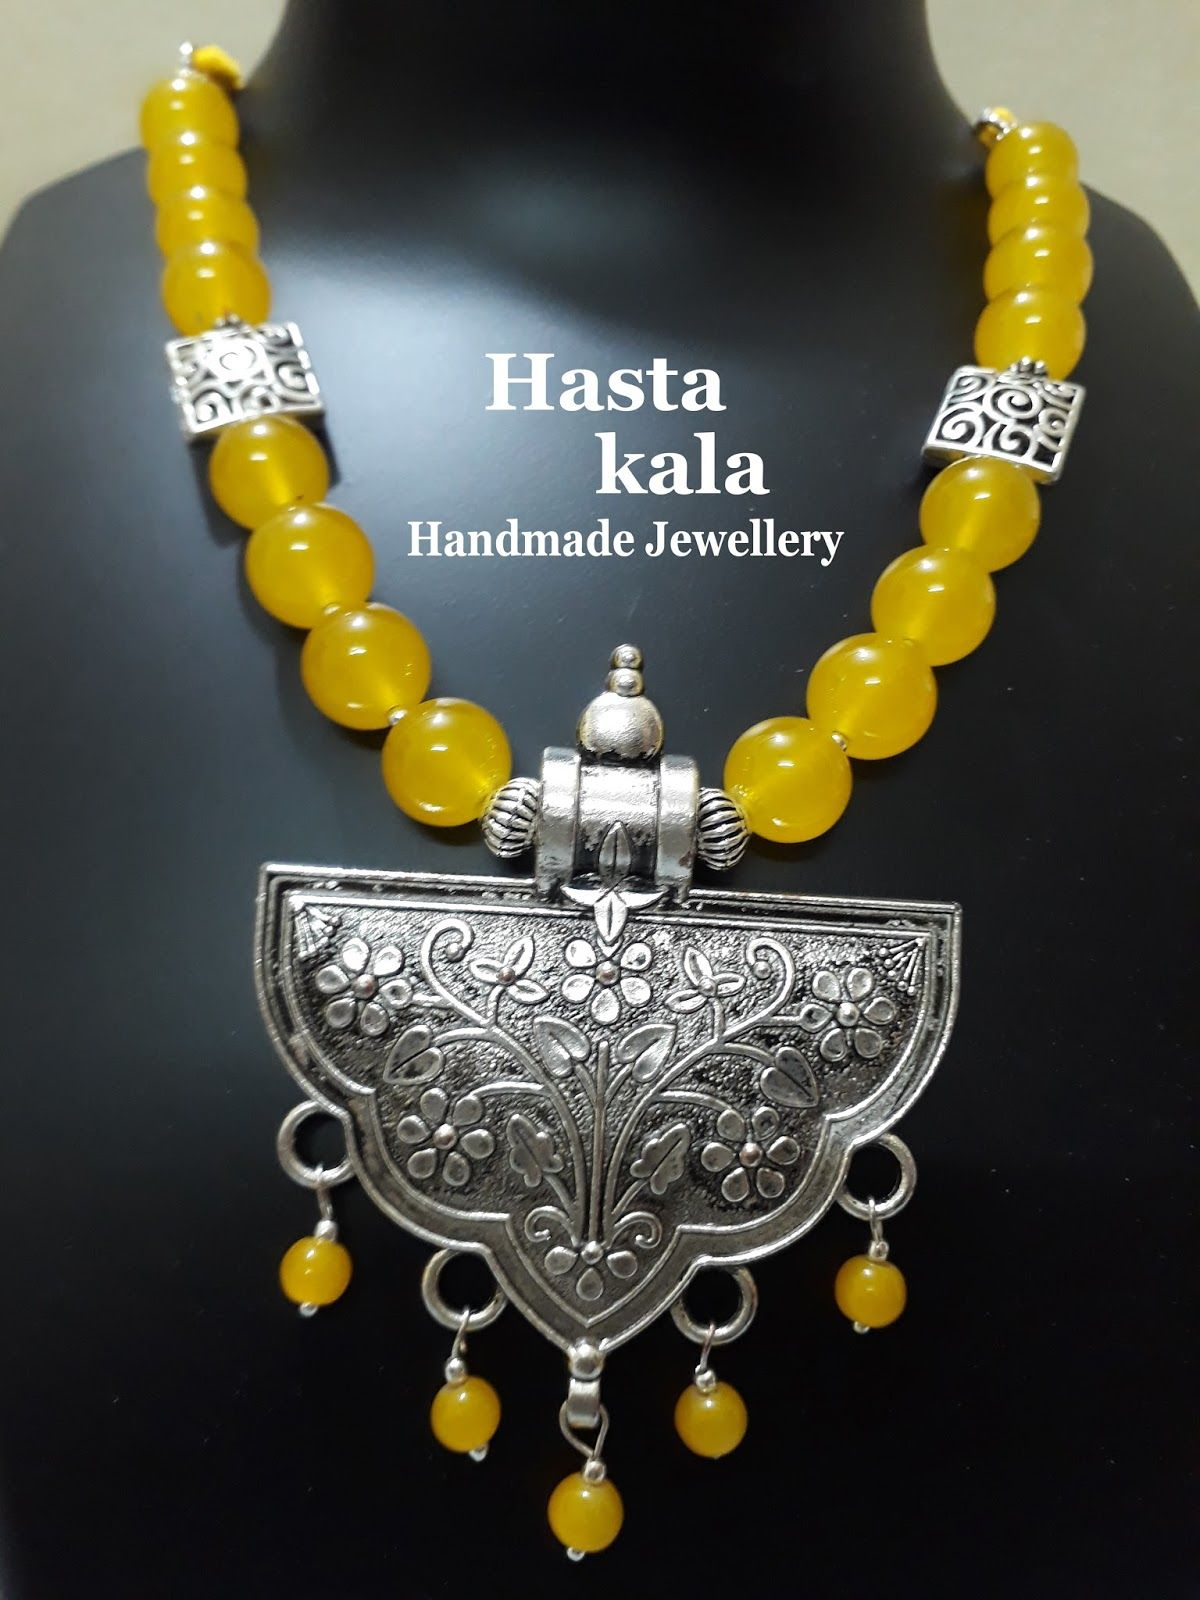 A Yellow Colour Glass Beads Necklace With German Silver Pendant